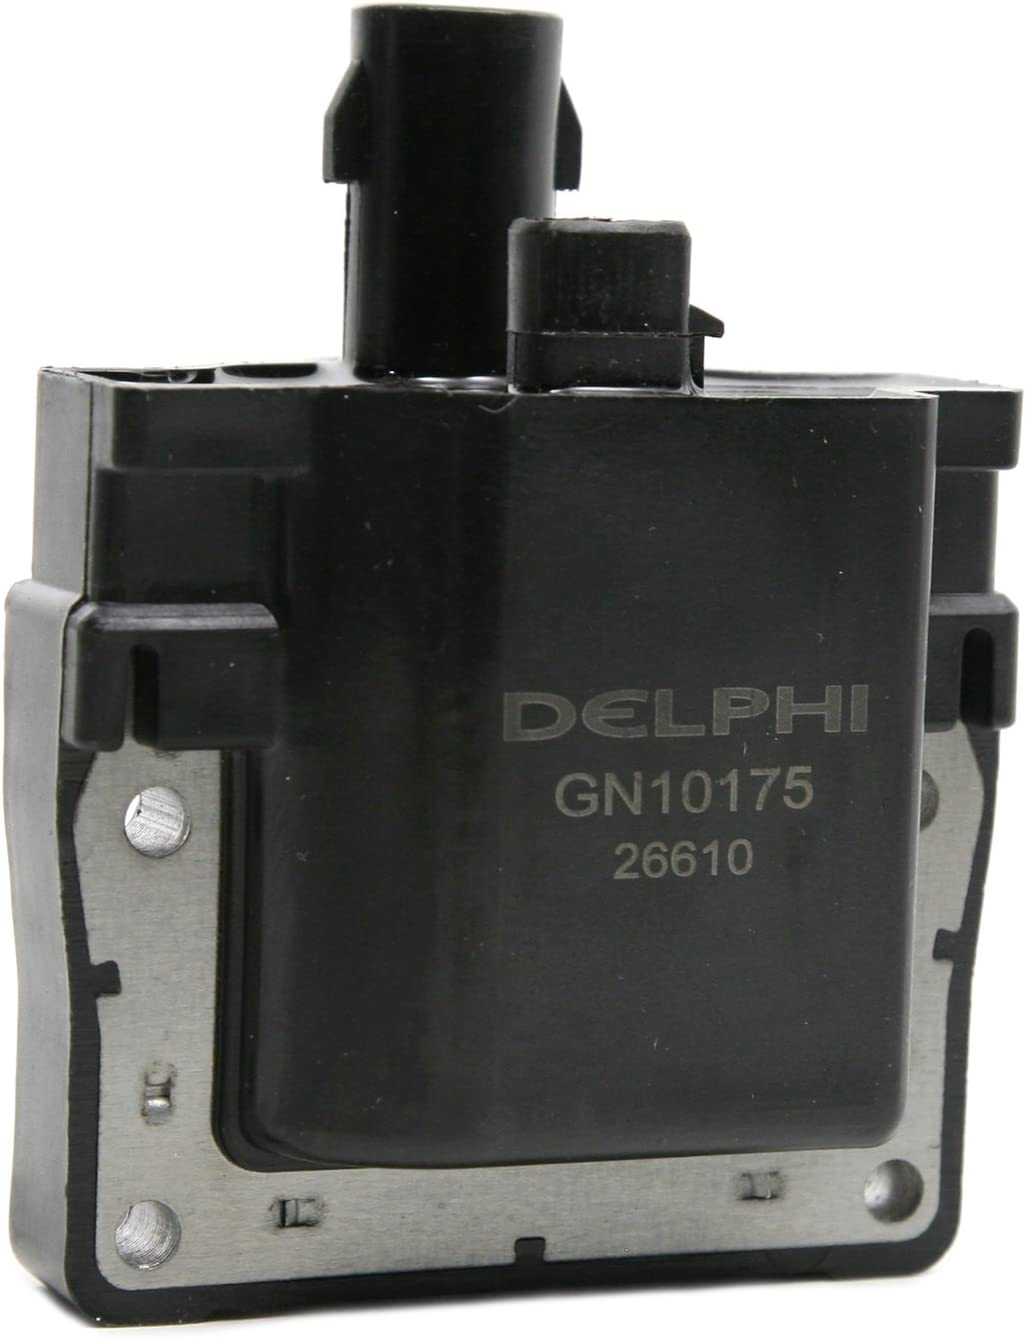 Delphi GN10175 Ignition Coil